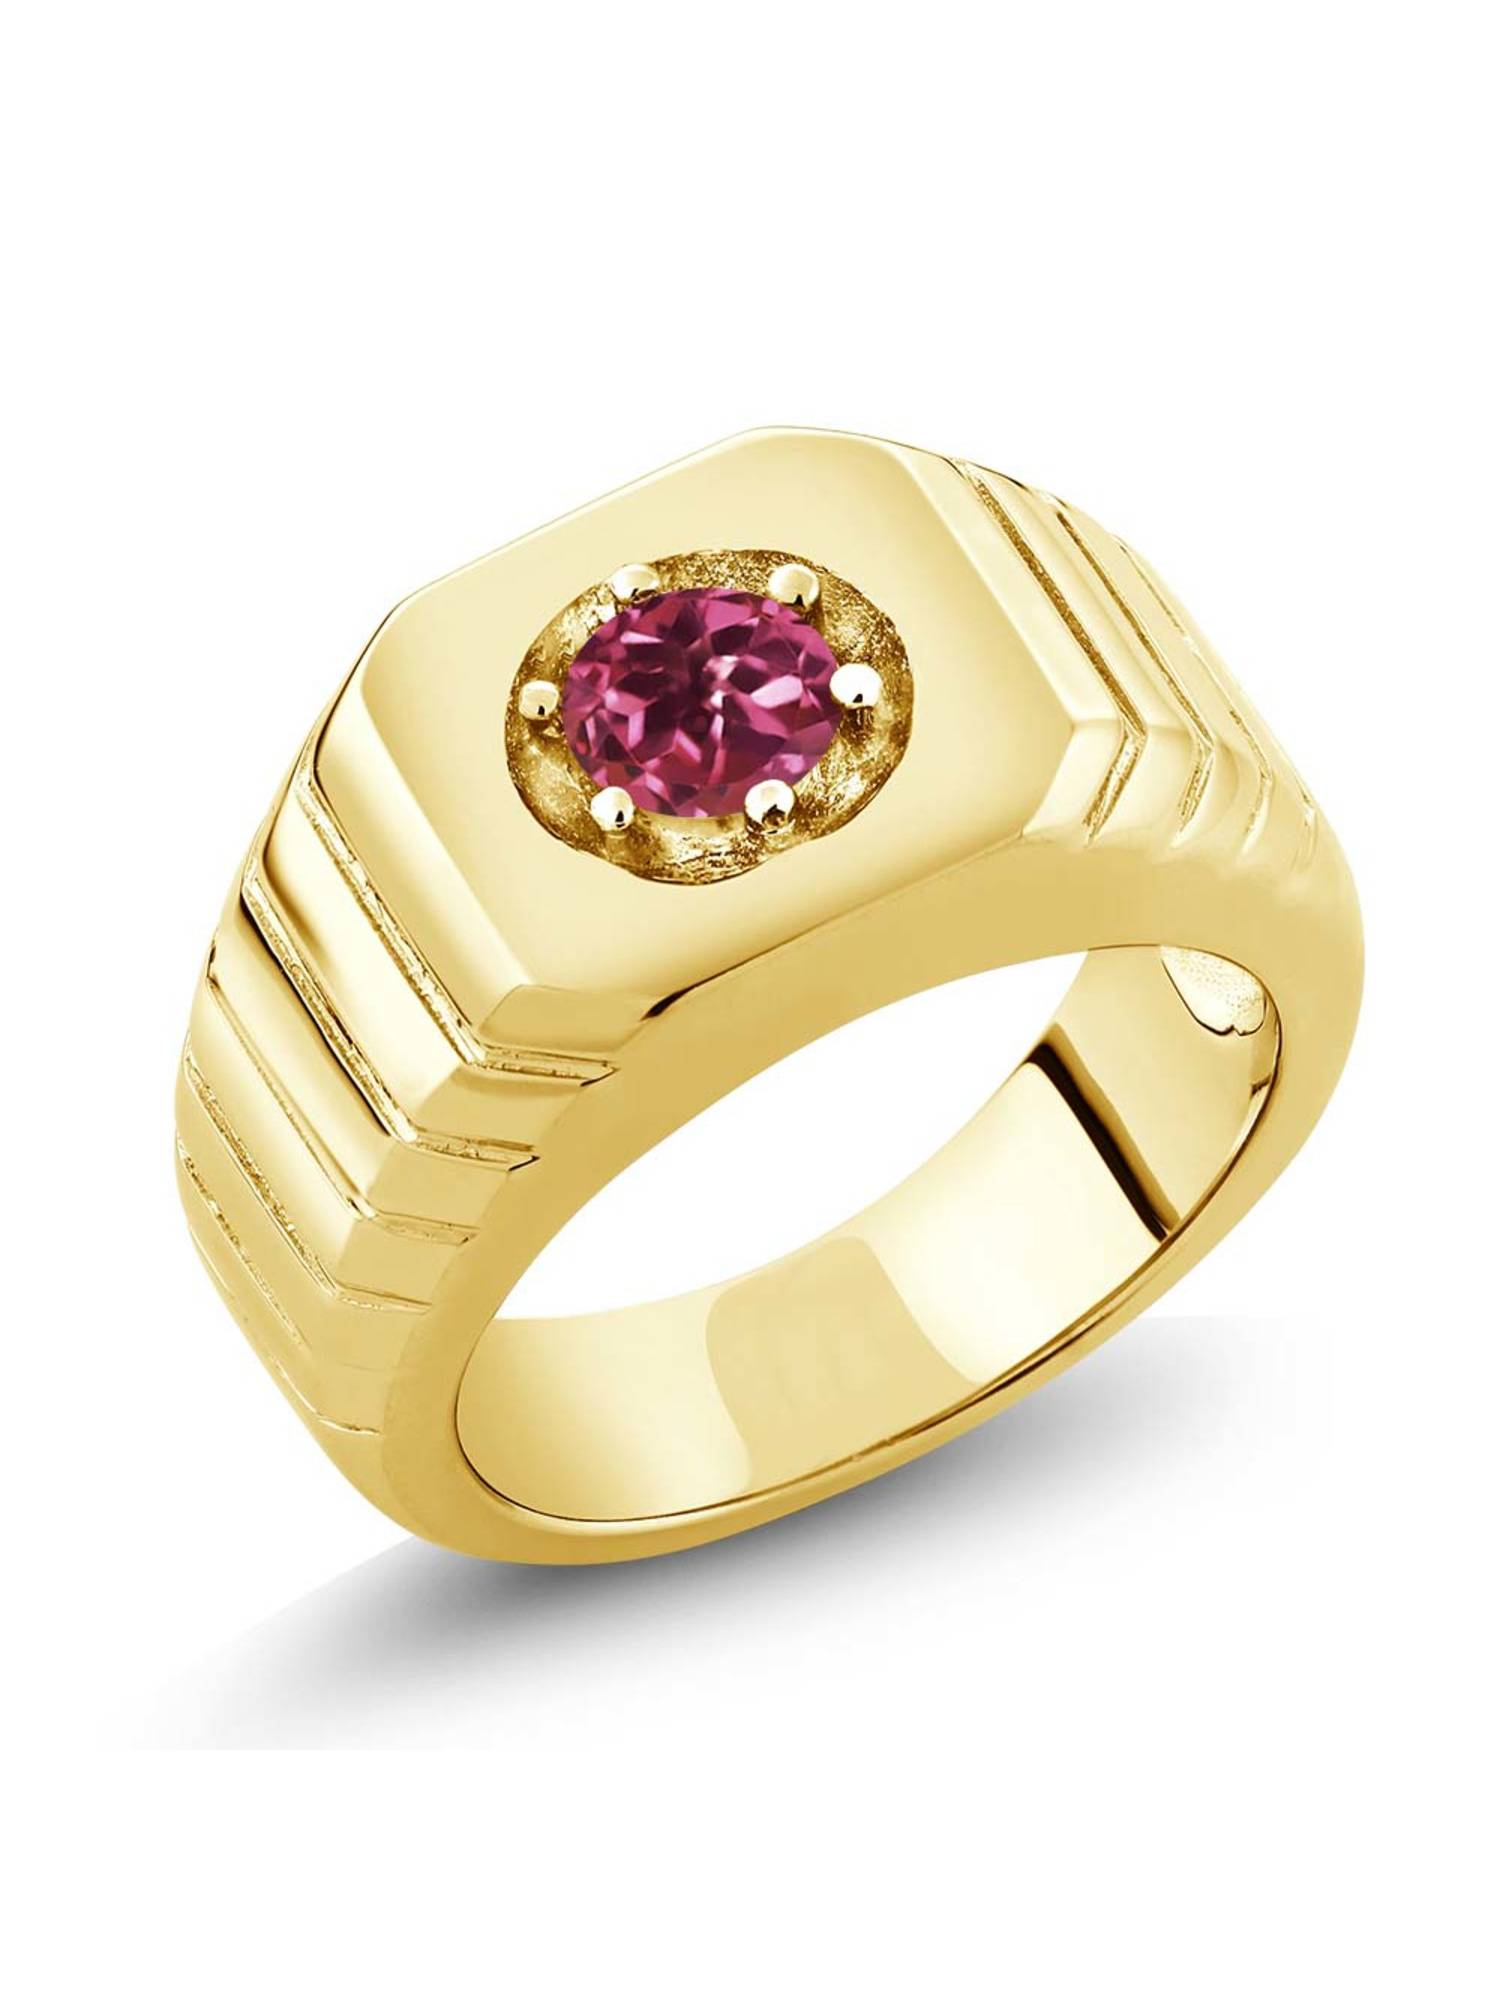 0.50 Ct Pink AAA Tourmaline AAA 18K Yellow Gold Plated Silver Men's Solitaire Ring by